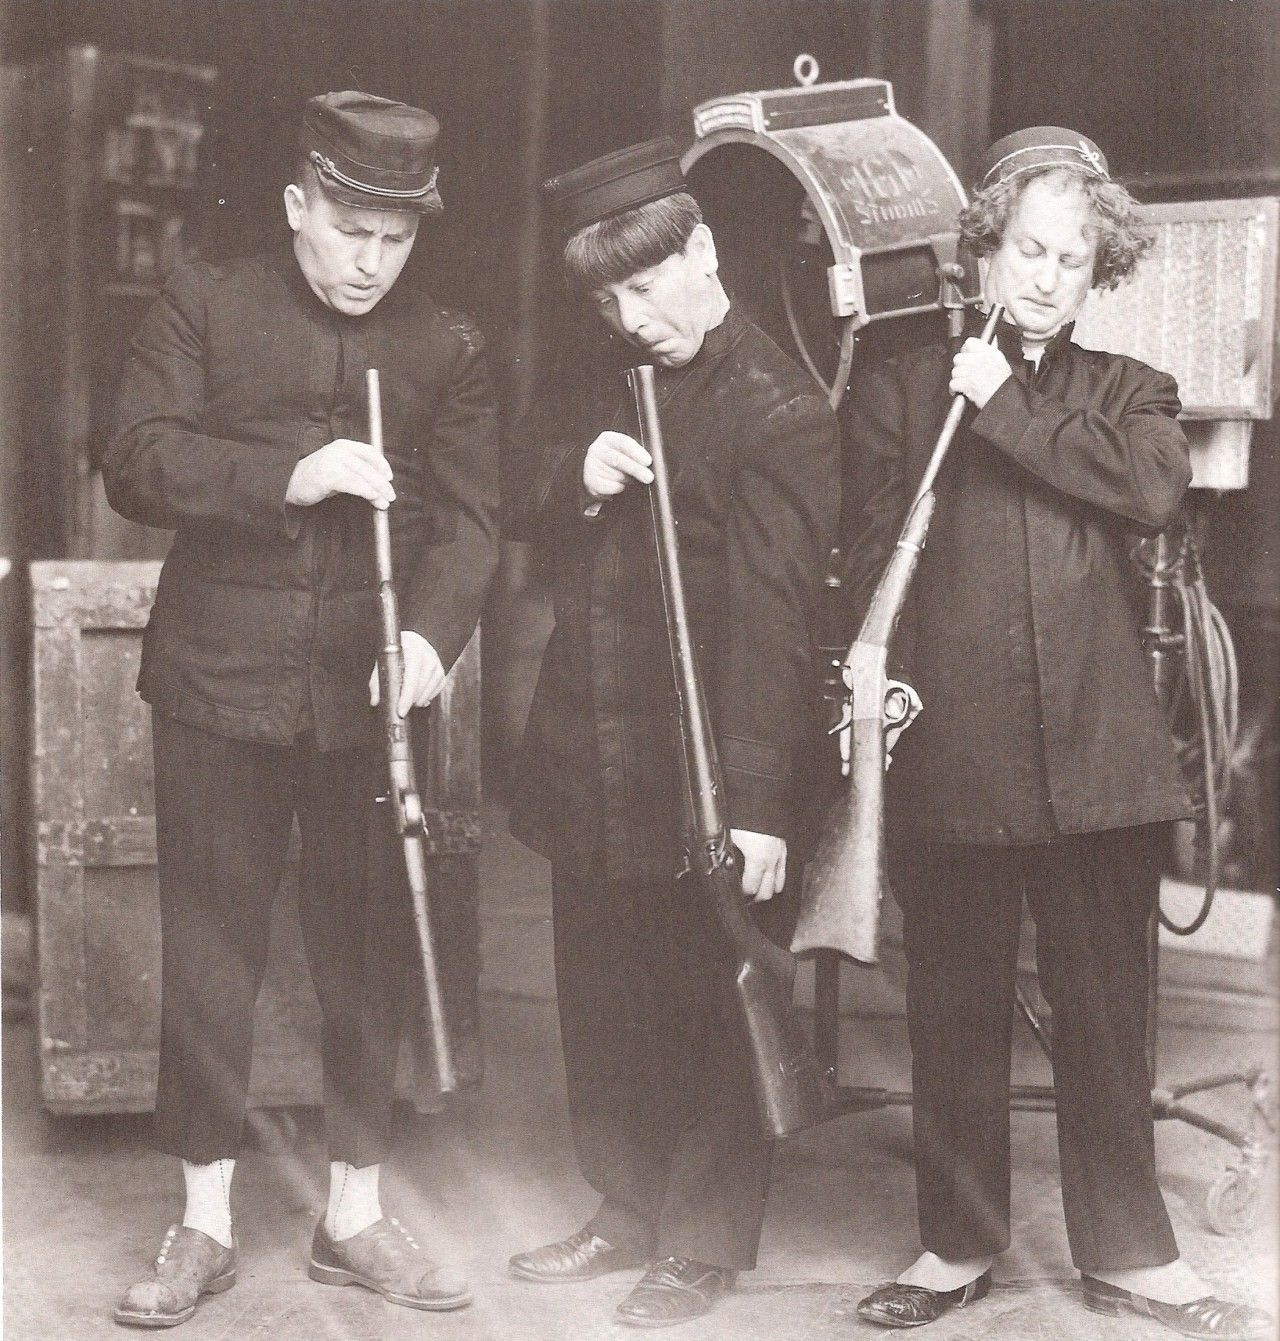 Pin By Rick Sanchez On My Childhood Nostalgia With Images The Three Stooges Short Subject The Stooges